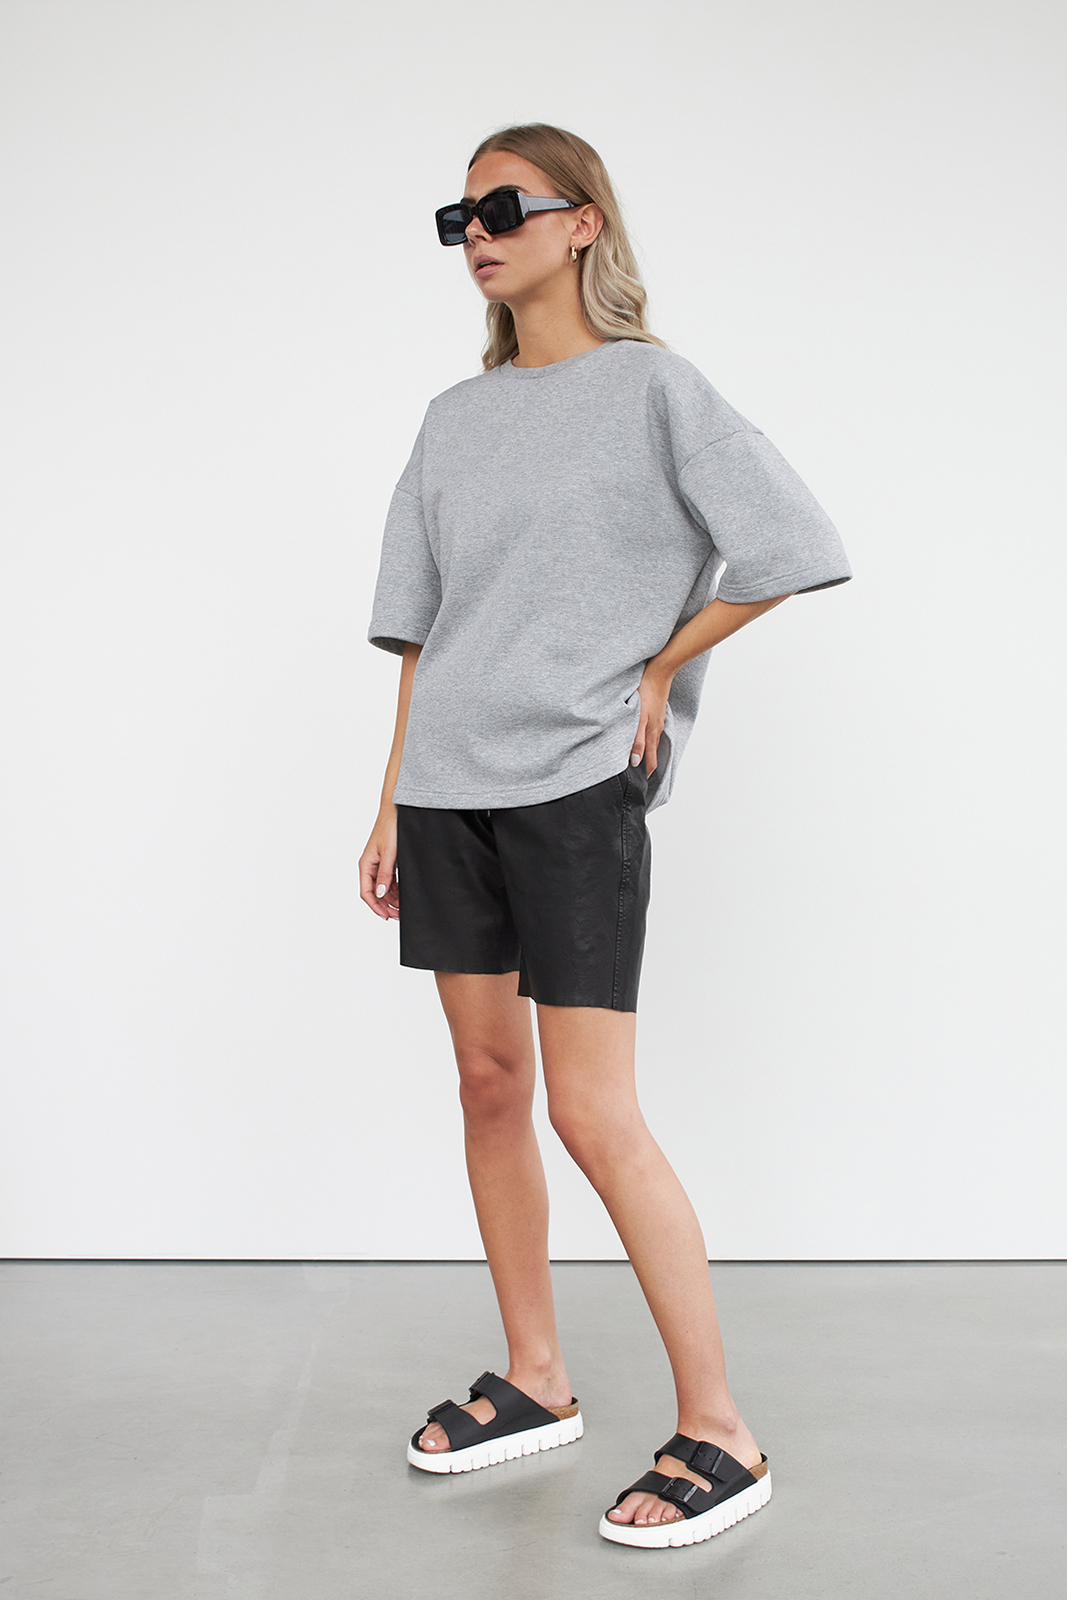 woman wearing t-shirt and leather shorts